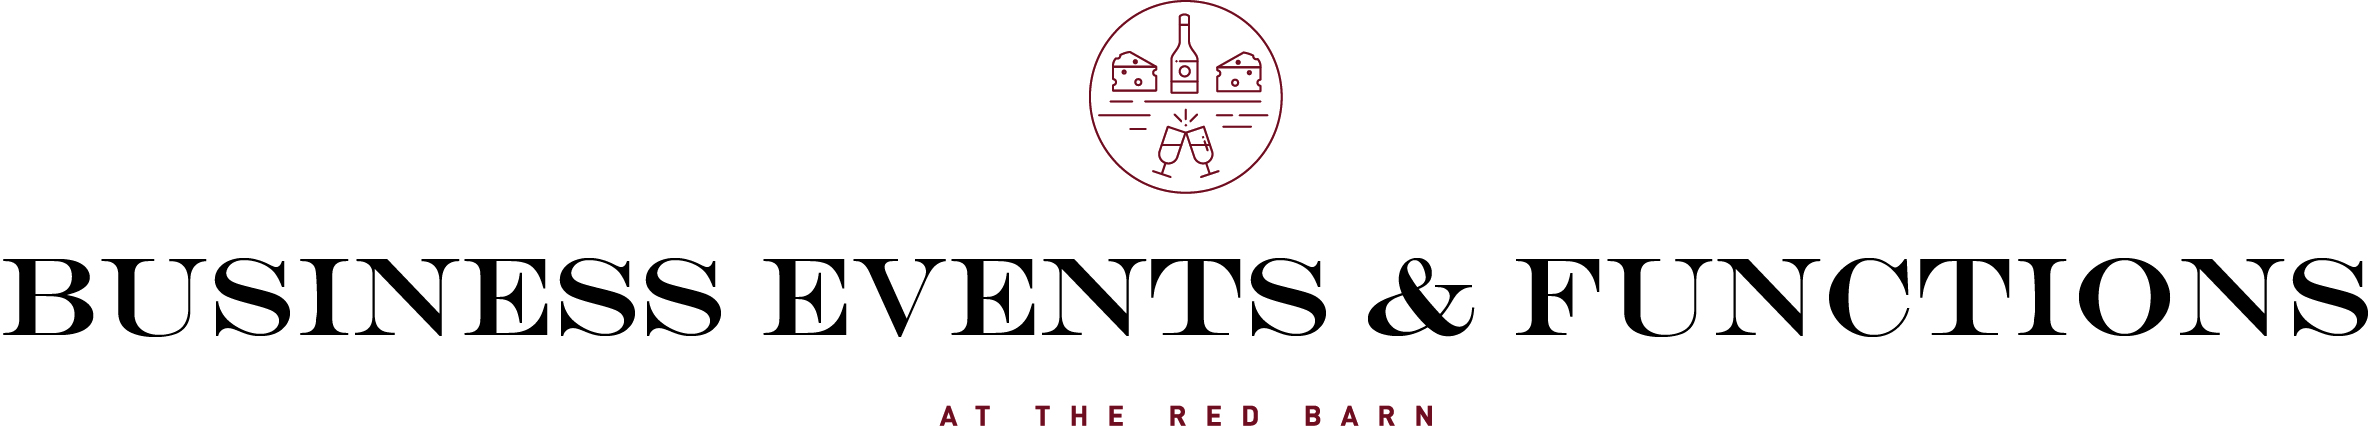 The Red Barn Brands-Red-Black-Engravers Font Business Events  Functions Logo